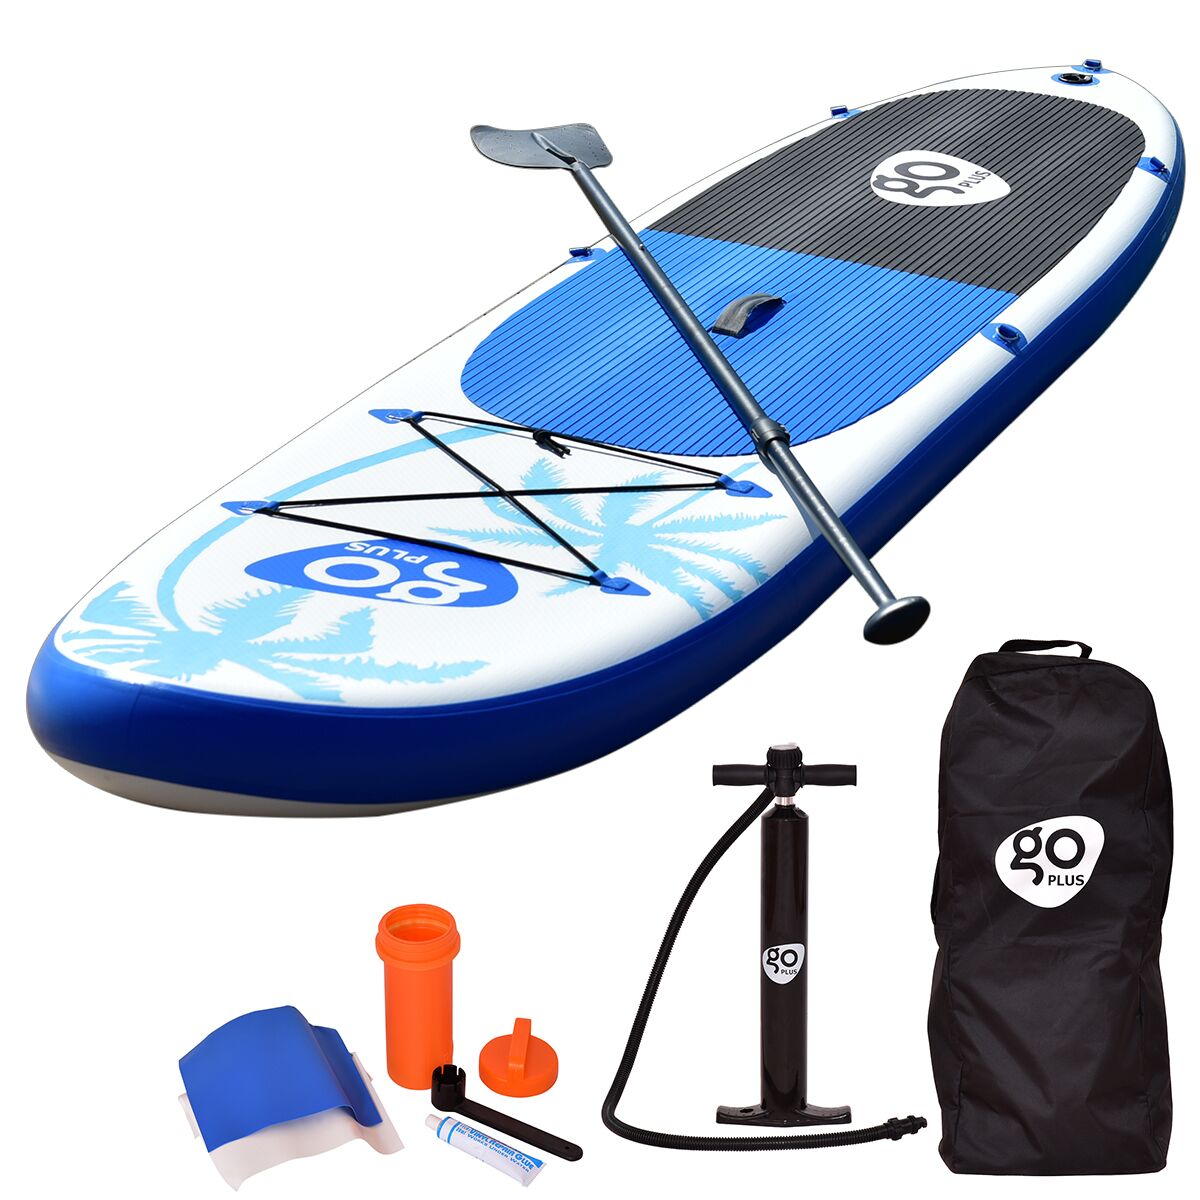 Costway Goplus 11' Inflatable Stand Up Paddle Board SUP w/ Fin Adjustable Paddle Backpack